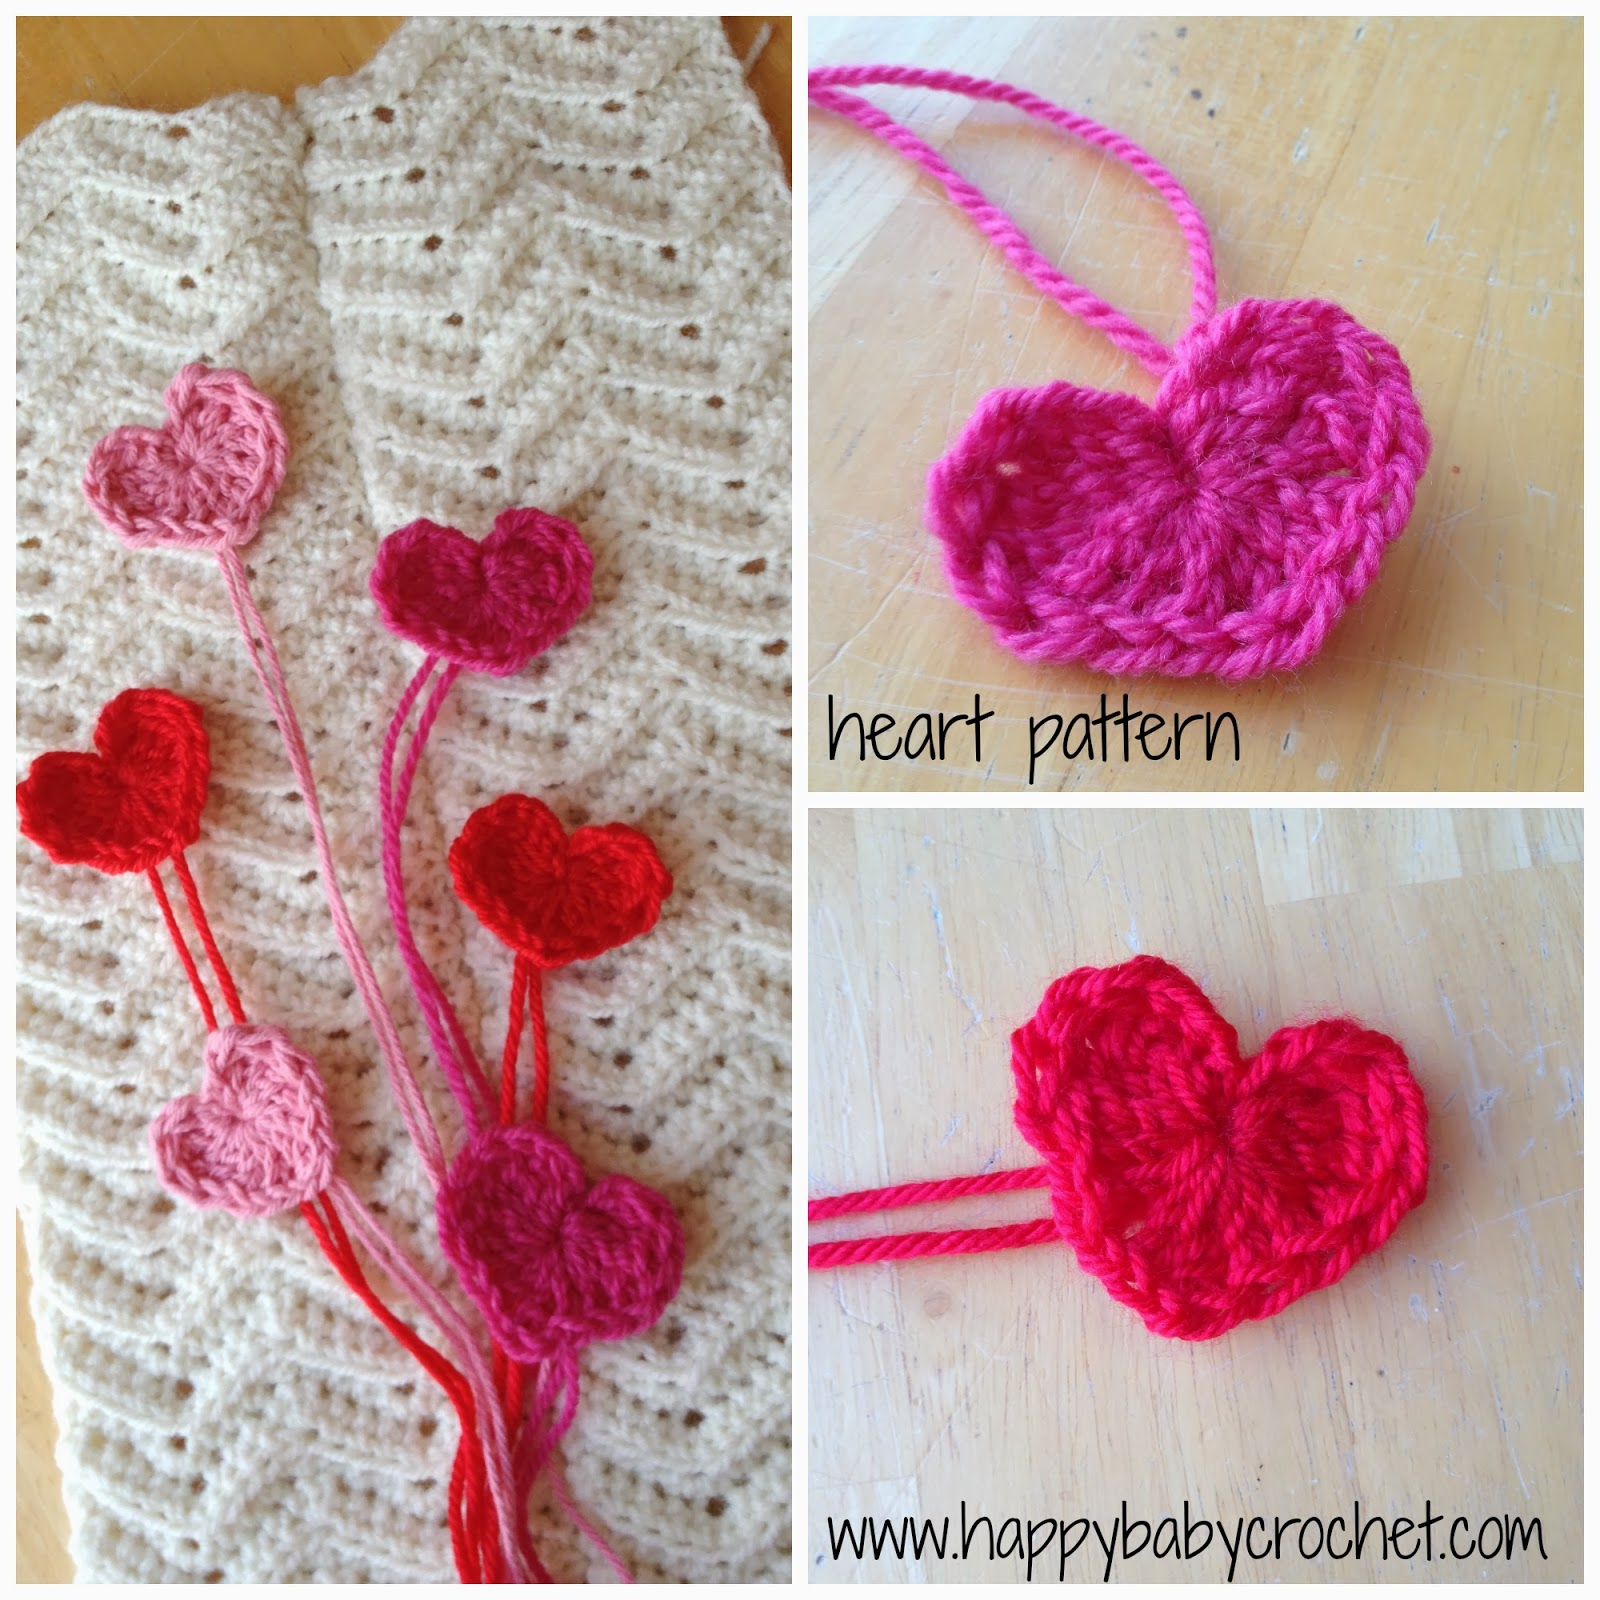 Happy Baby Crochet: Patterns and Tutorials